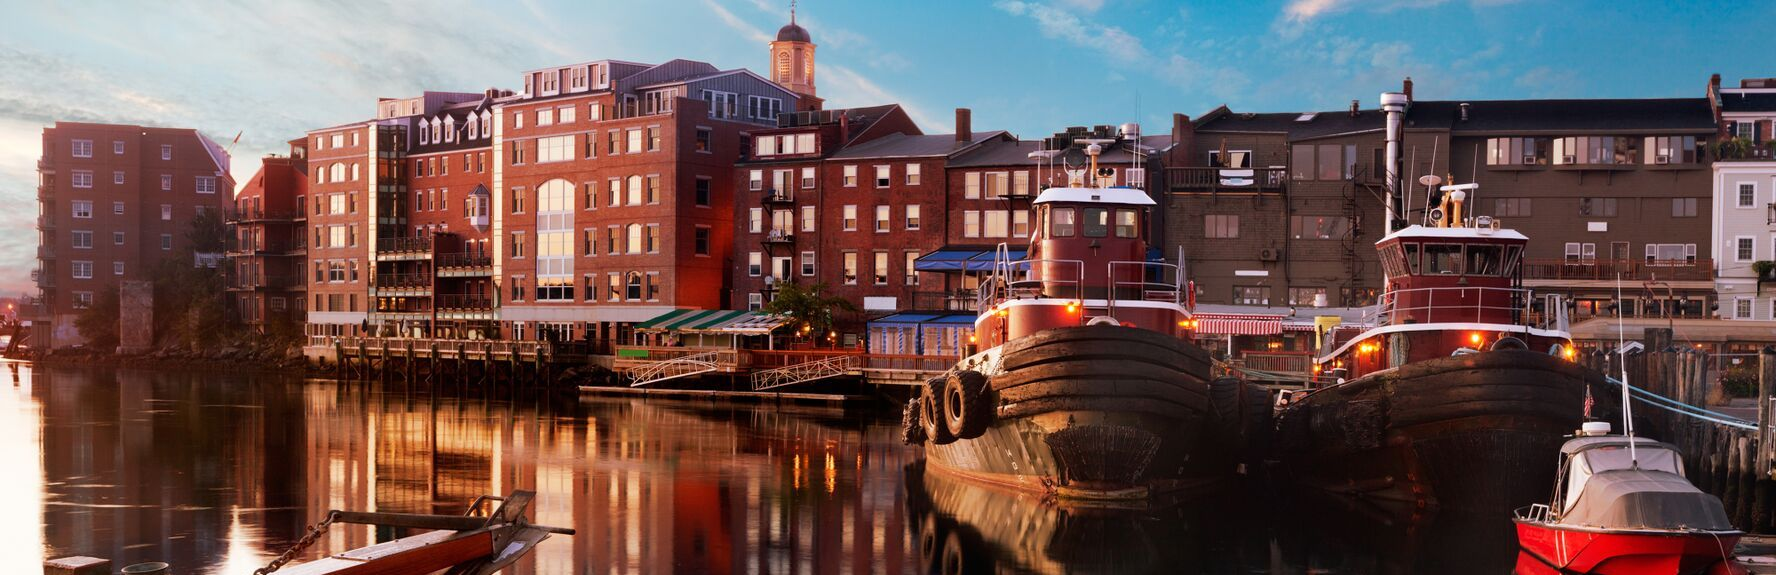 Portsmouth, New Hampshire, United States of America